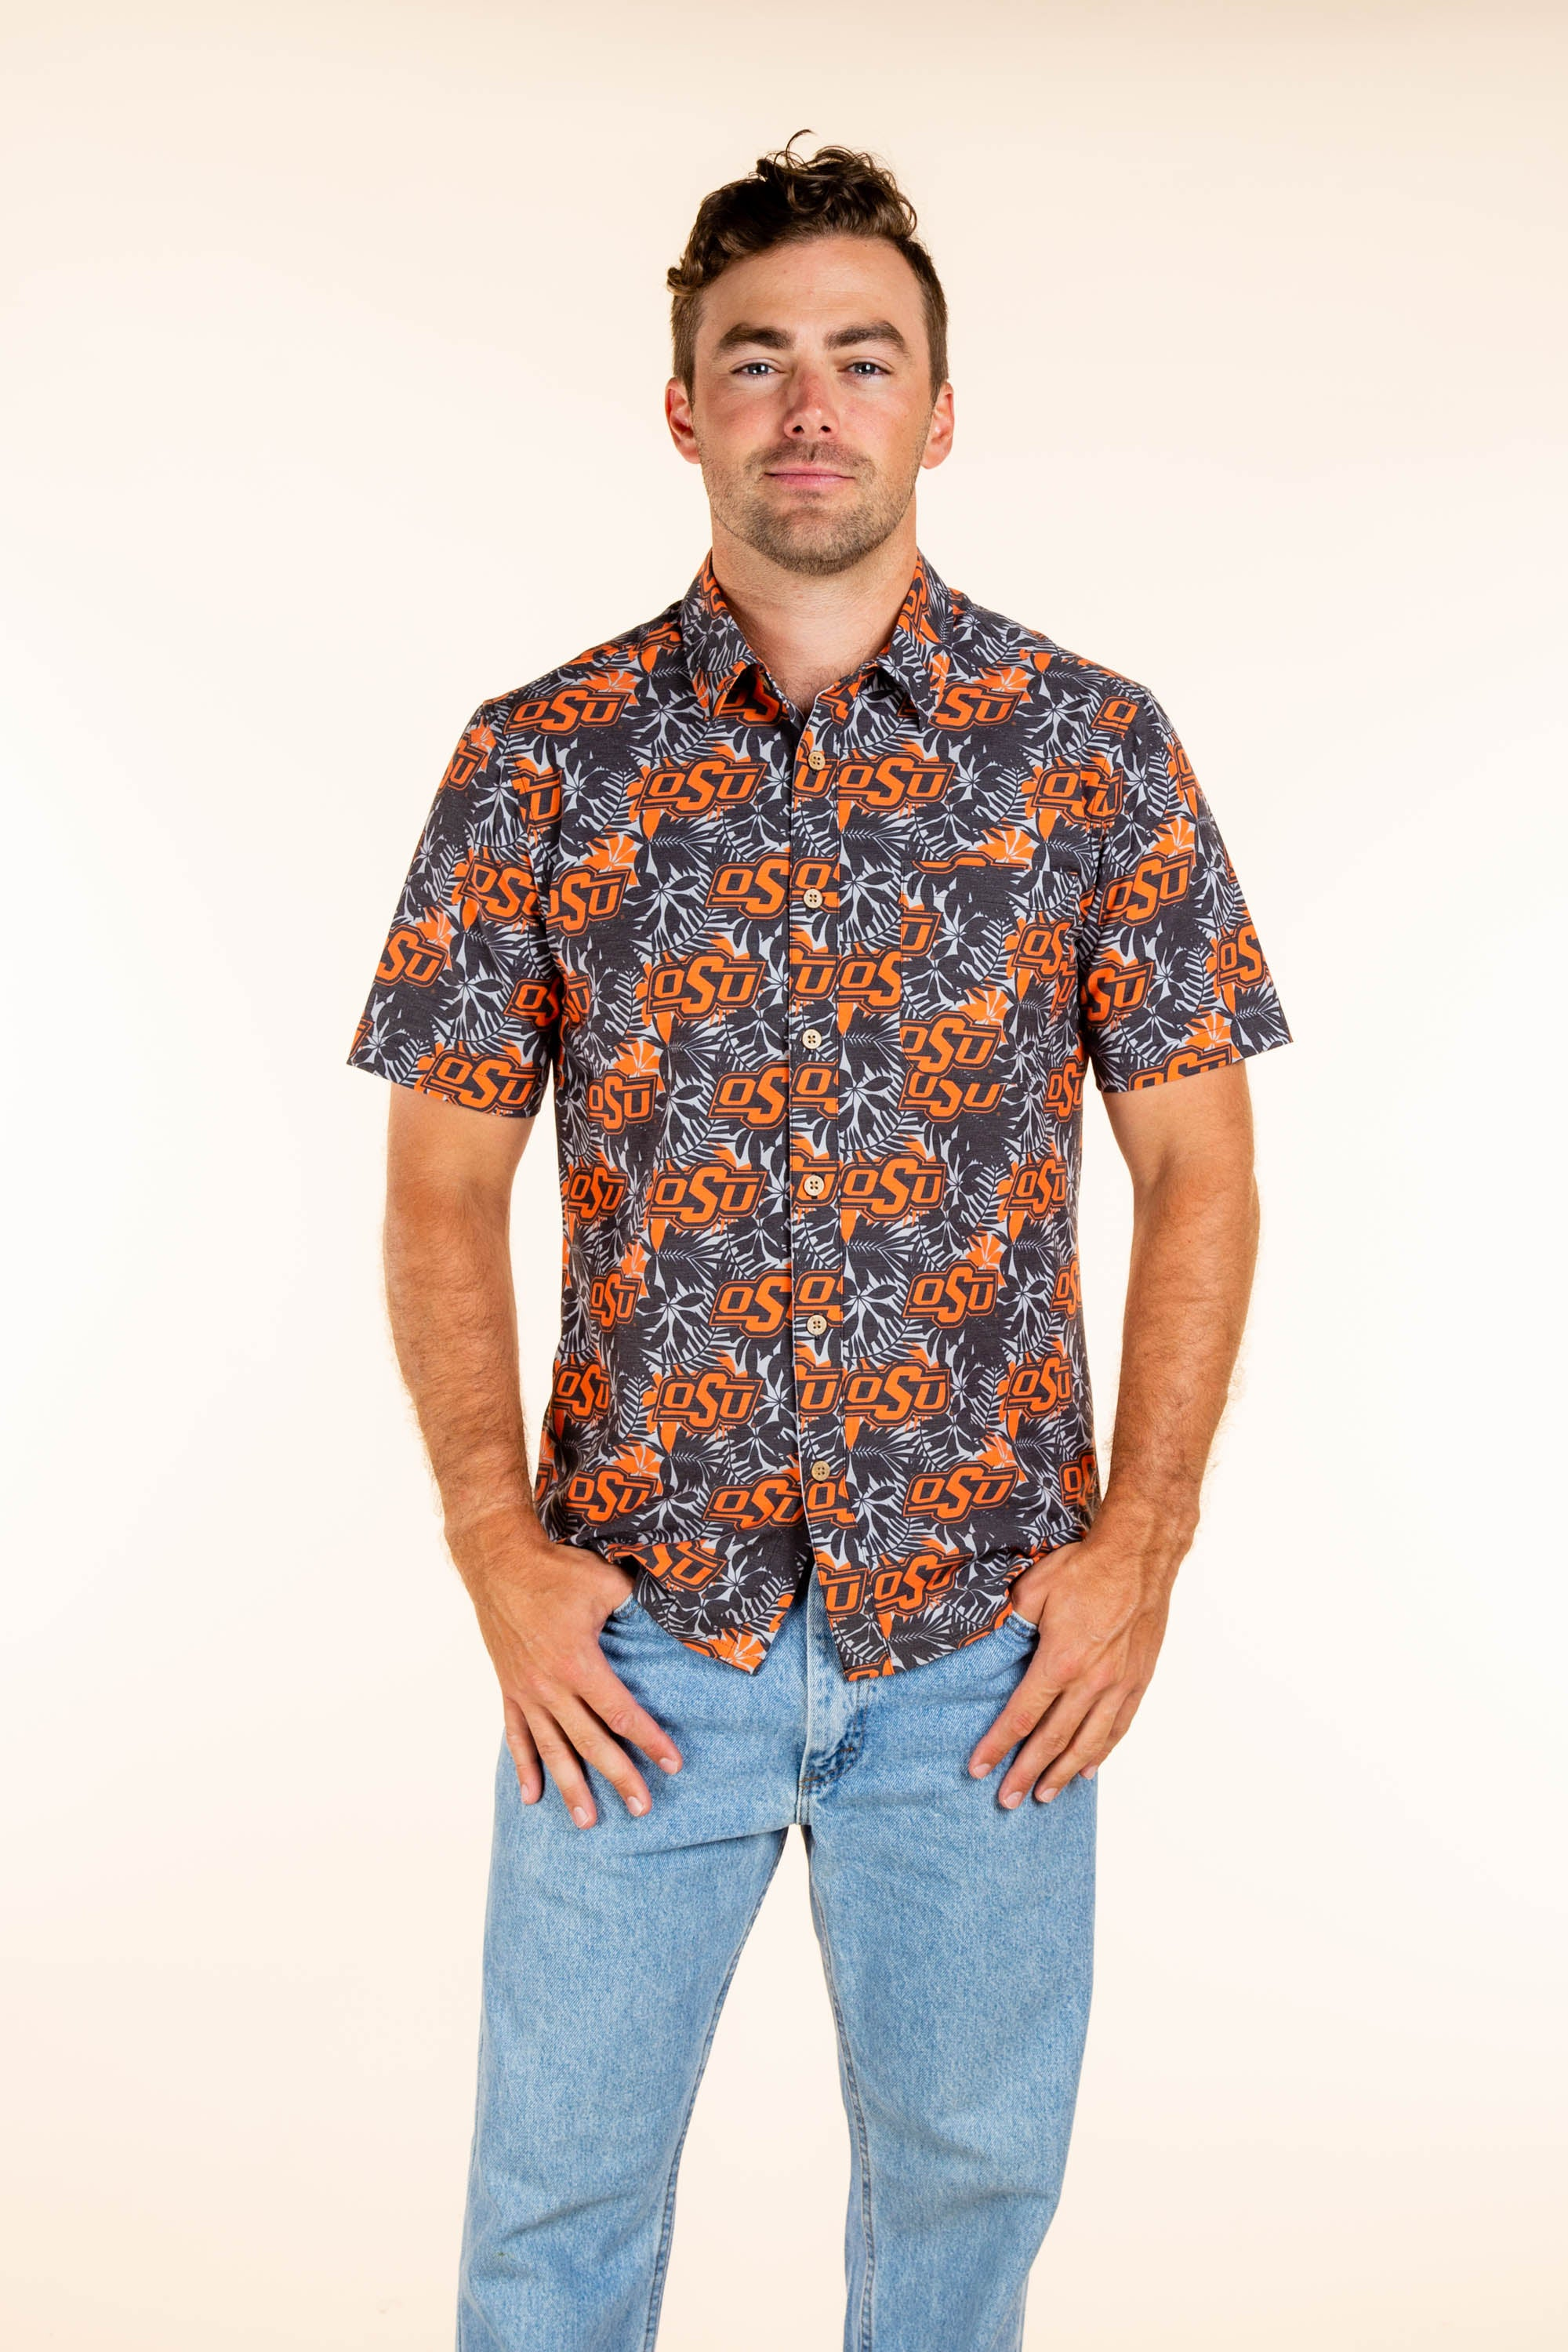 Men's Oklahoma State button up Party shirt